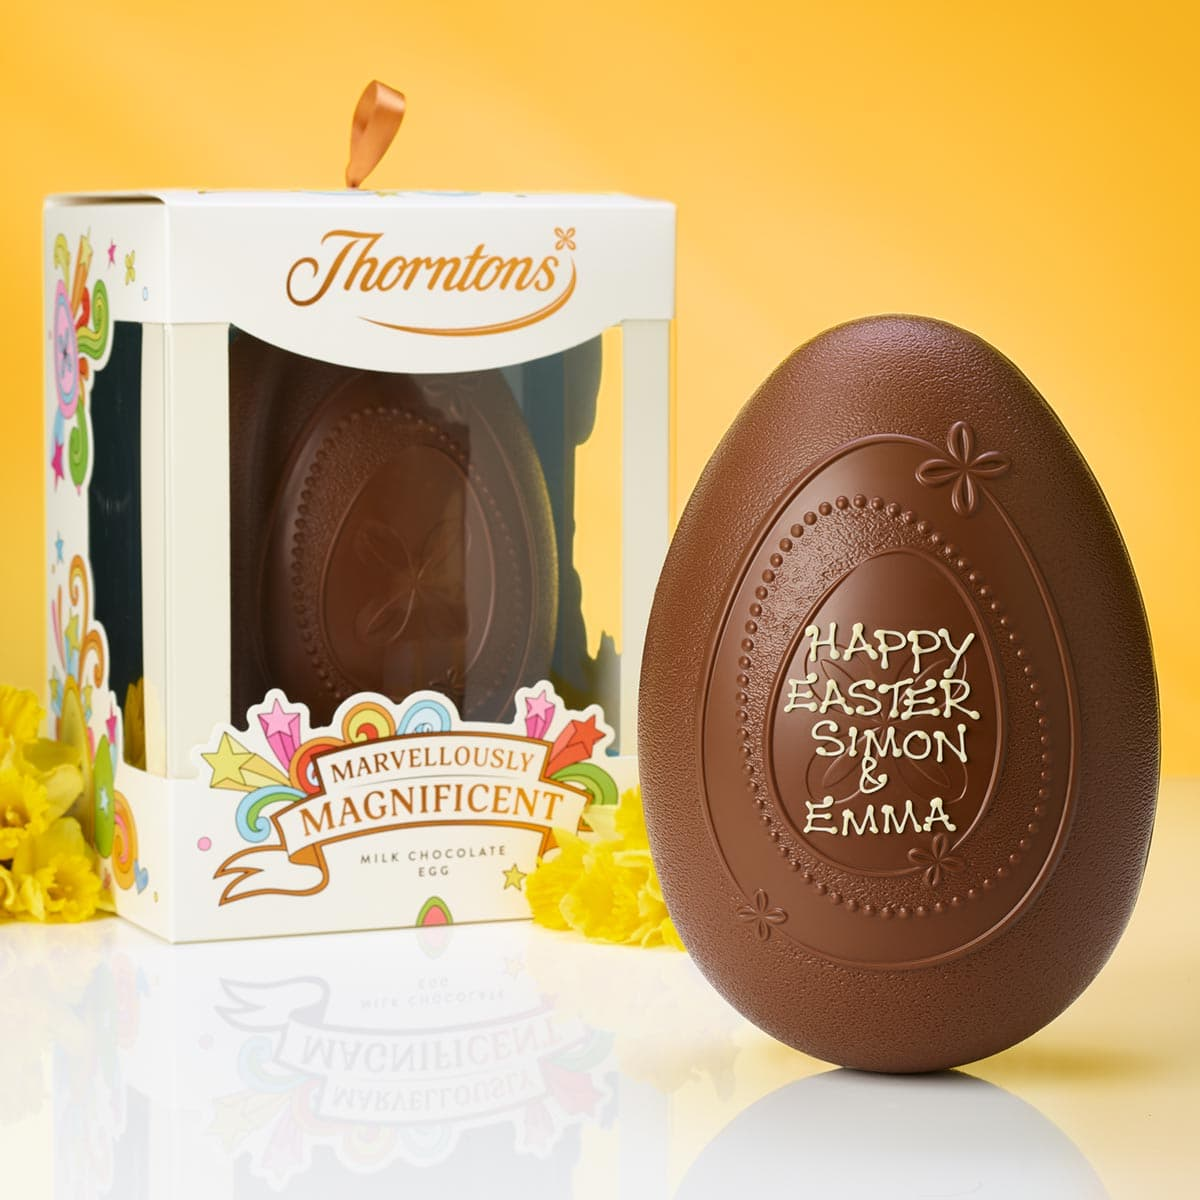 A personalised large Easter egg and plain large Easter egg in its box.